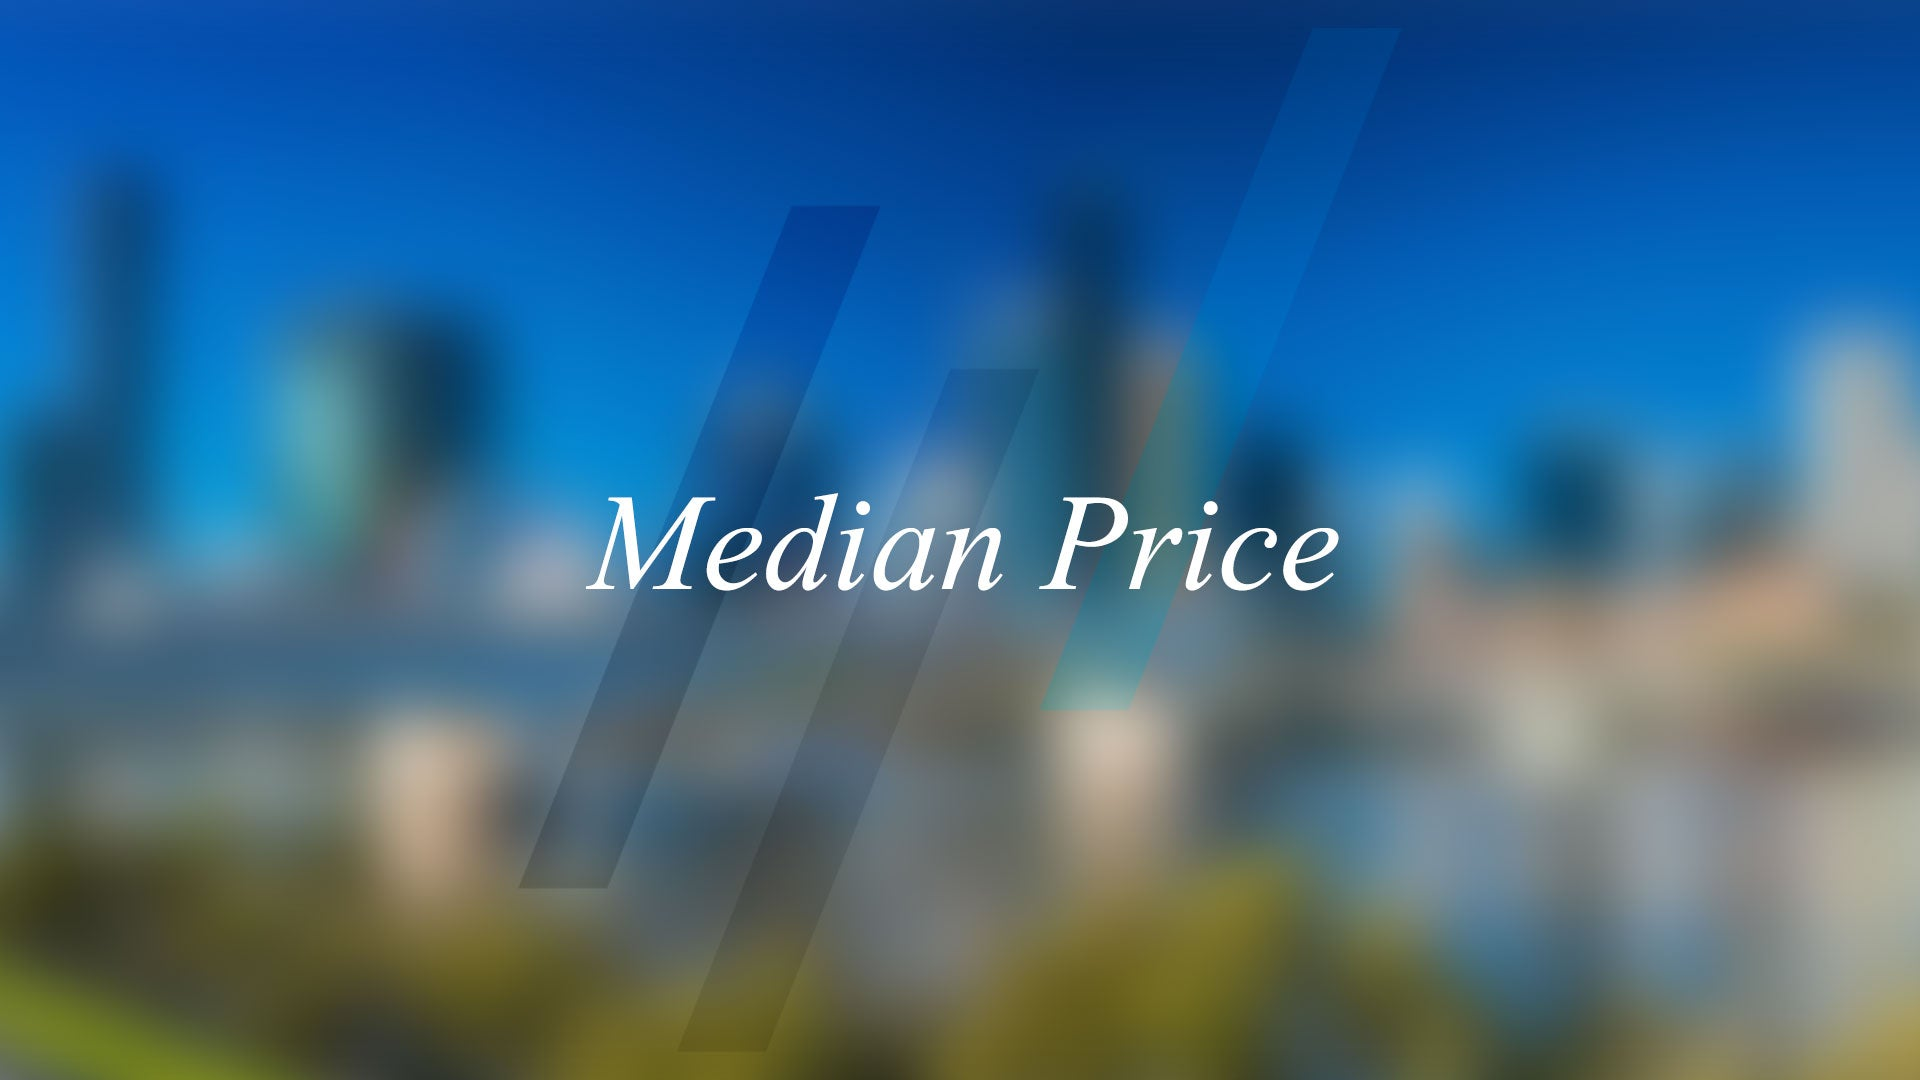 Median Price - What is it and why is it important?